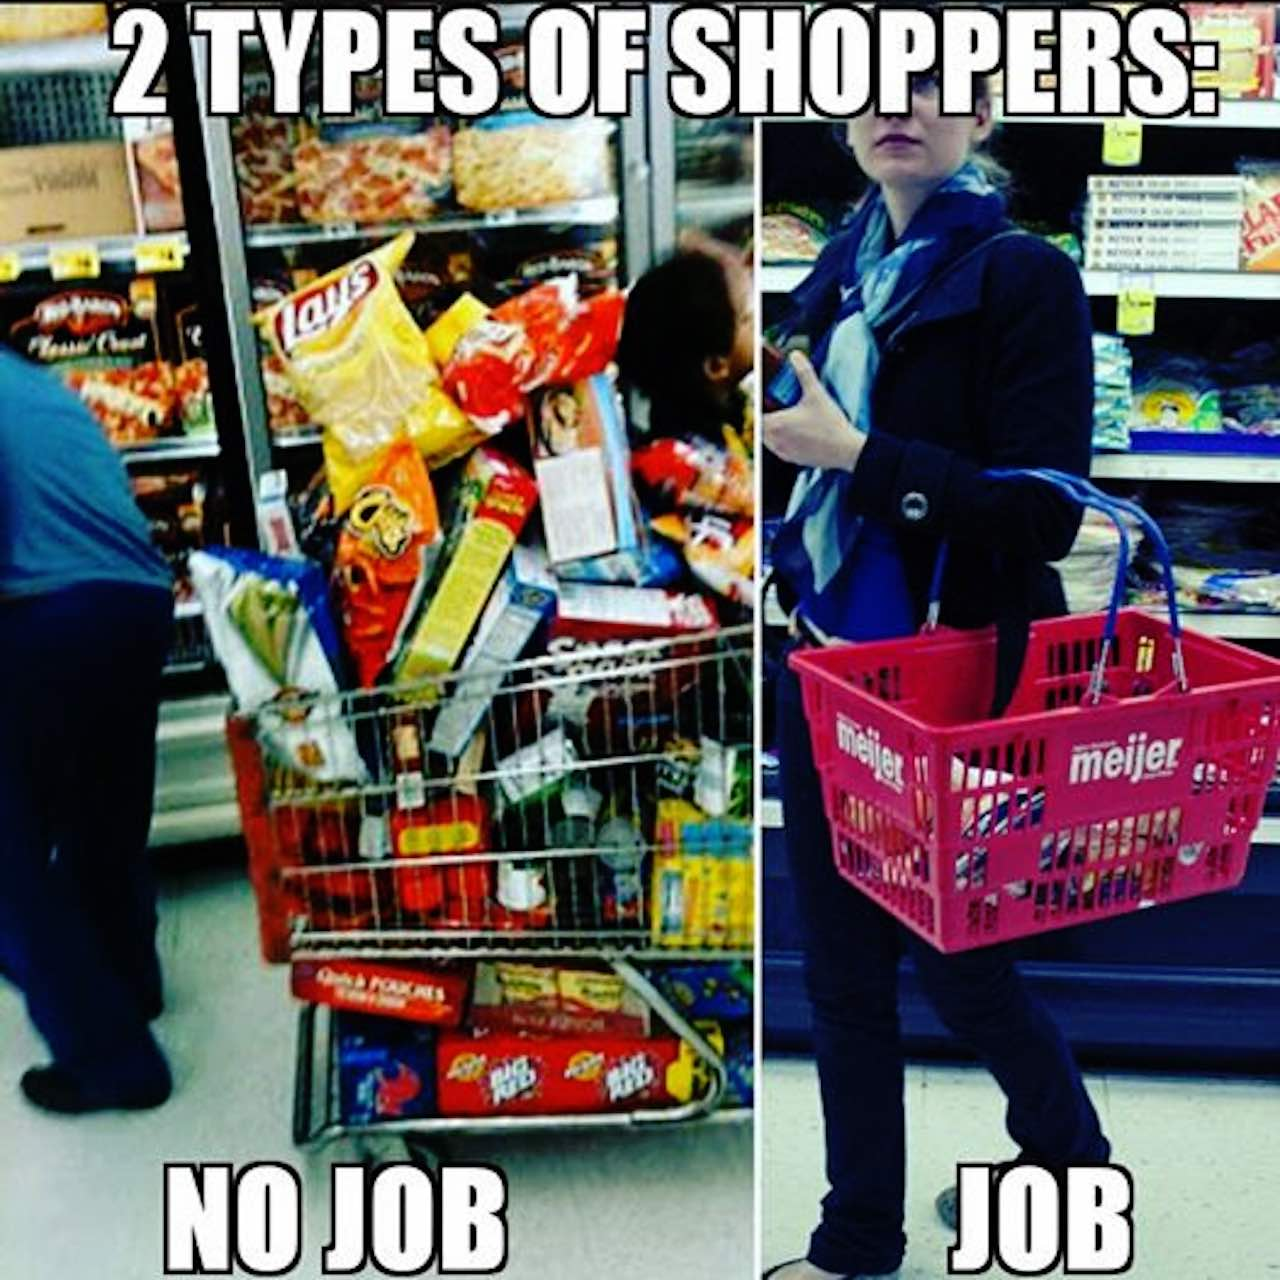 meme showing two shoppers, one with an empty cart and the word 'job' and one with a full cart and the word 'food stamps'